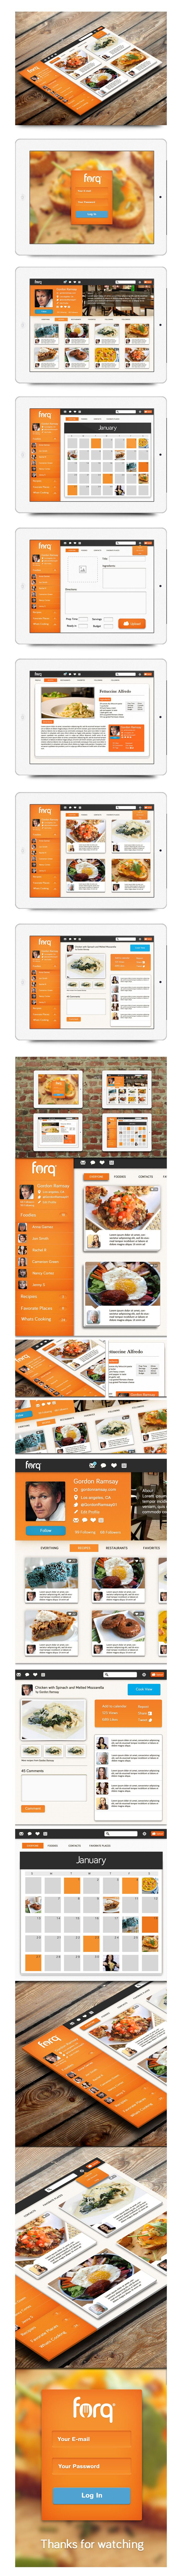 FORQ - Food Network App by Isaac Sanchez, via Behance *** Forq is a social network for foodies. Social networks already exist, and so do recipe and food sites, but not the cross-over. Forq will be the coolest mobile app (phone & tablet) for foodies that want to share recipes and many other food related occasions, activities and discussions.